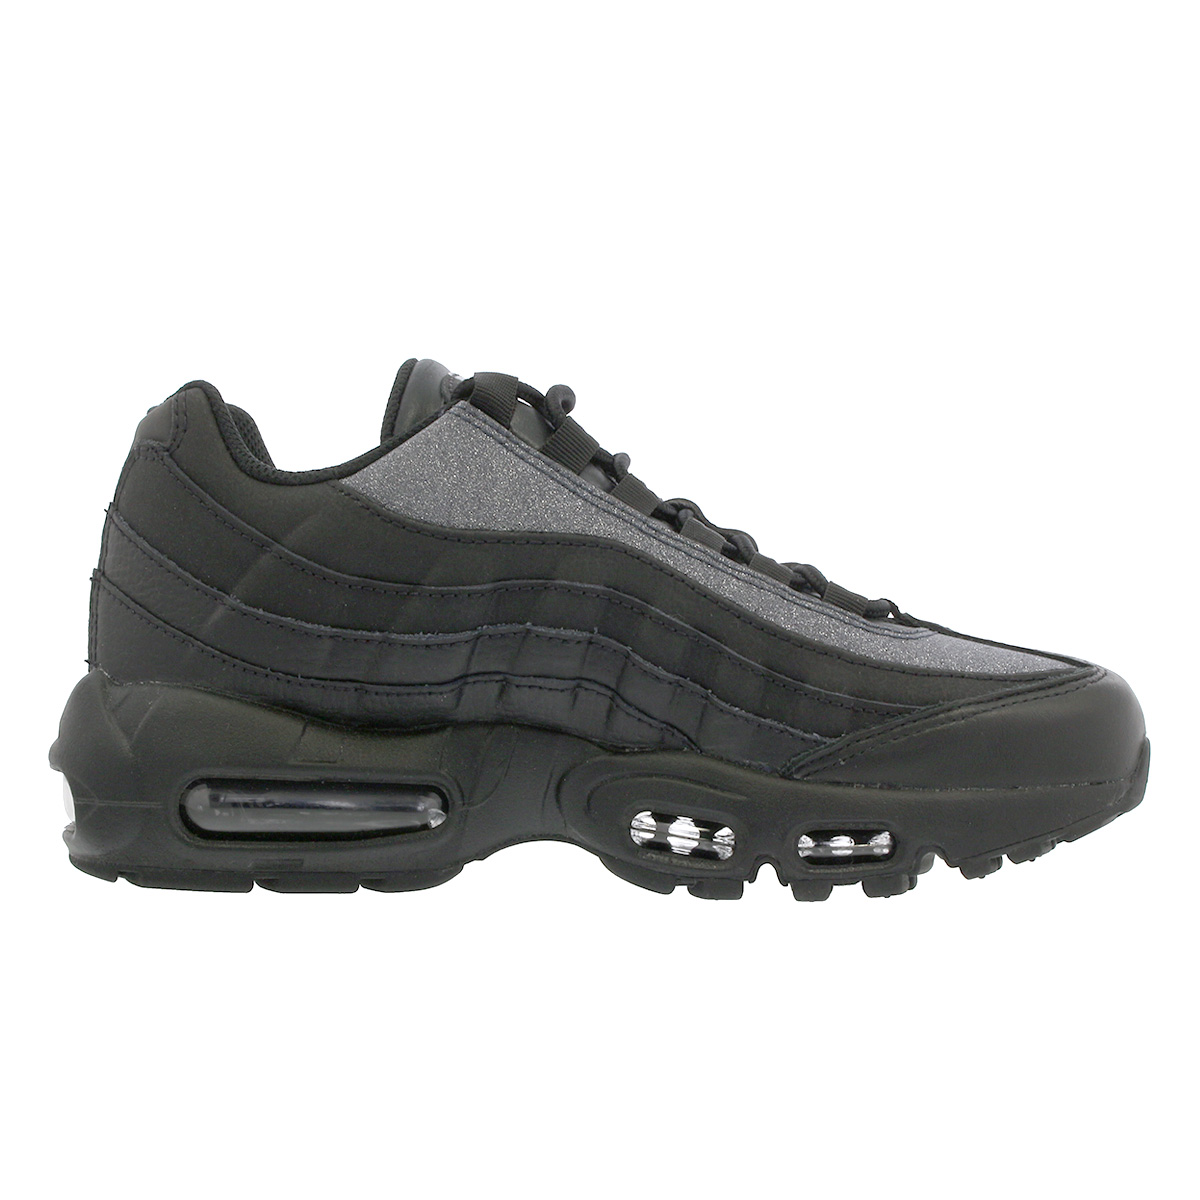 45c804e1b6 ... NIKE WMNS AIR MAX 95 SE Nike women Air Max 95 SE BLACK at0068-001 ...